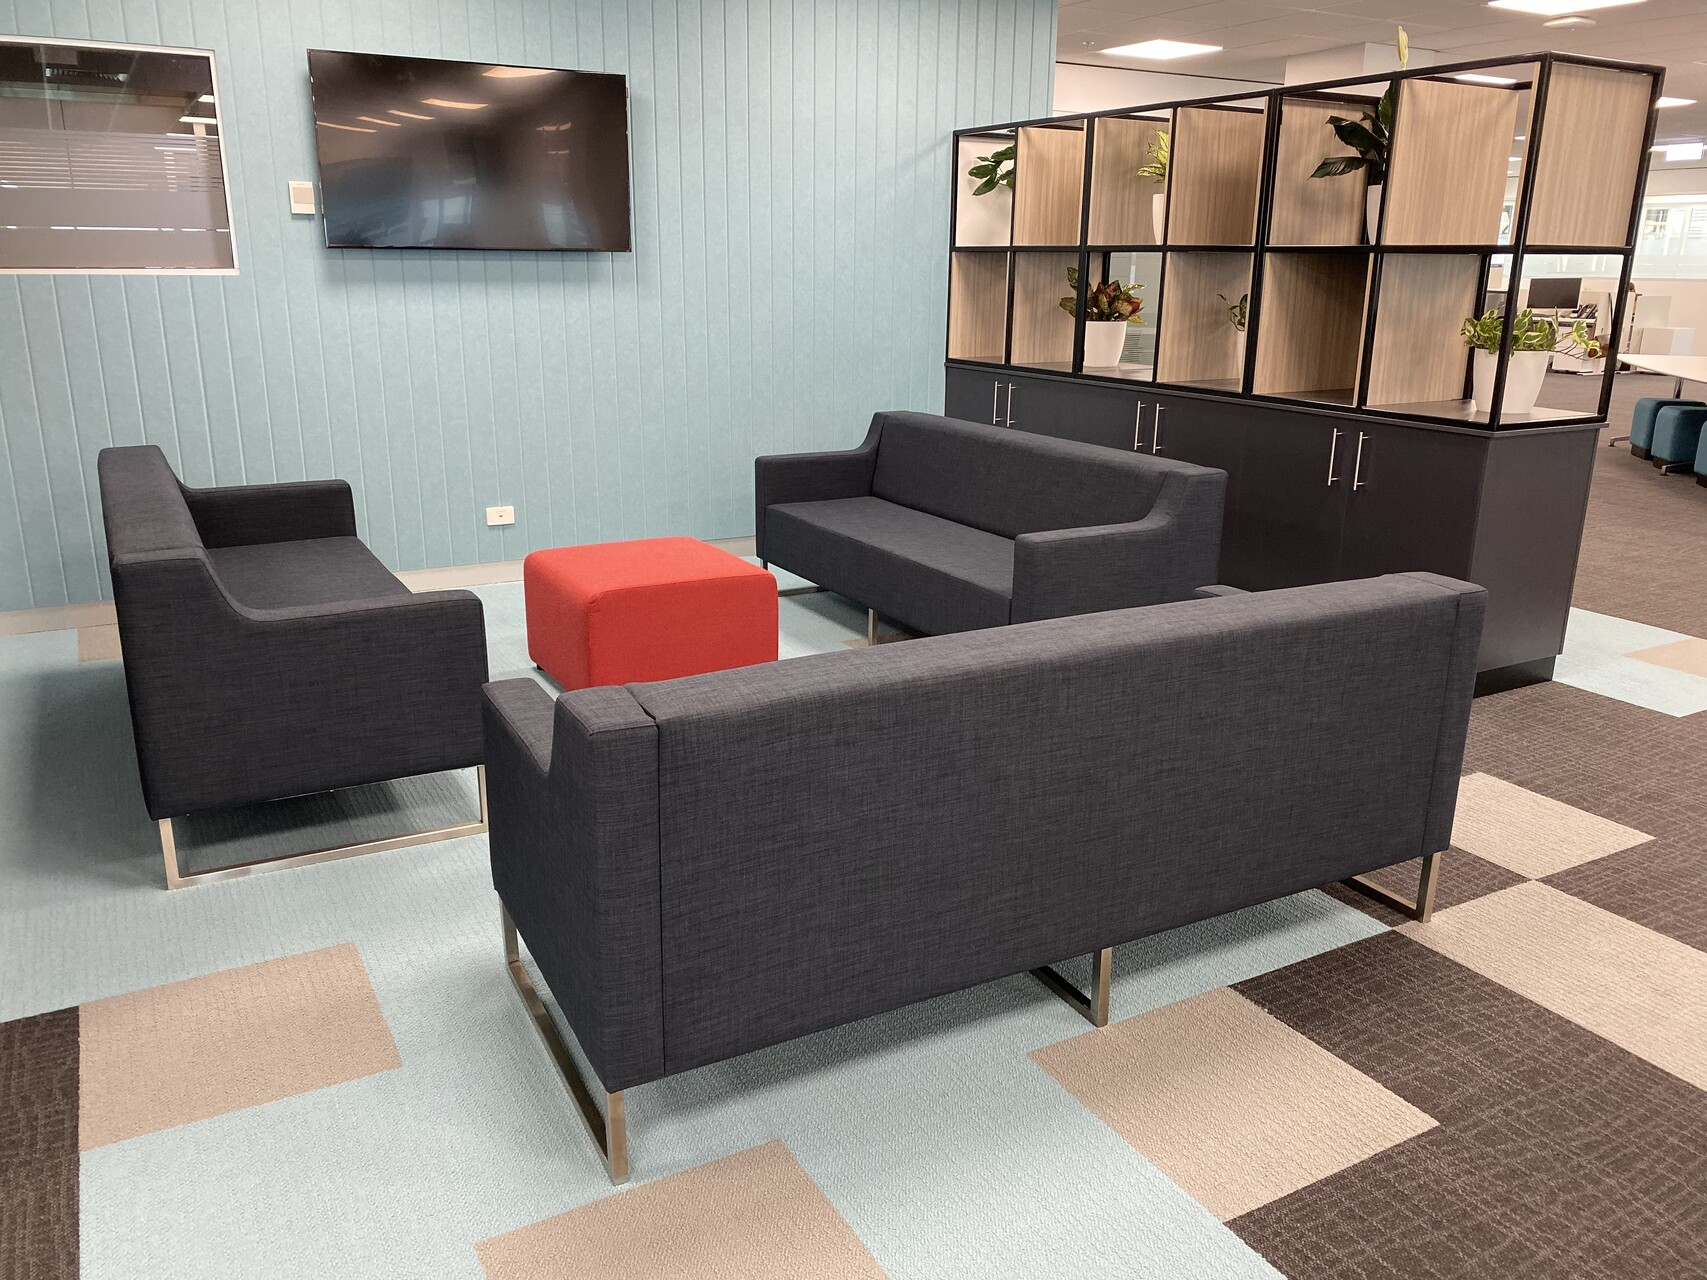 IMG_20191129_104510 lounge furniture with cabinet drawers australia